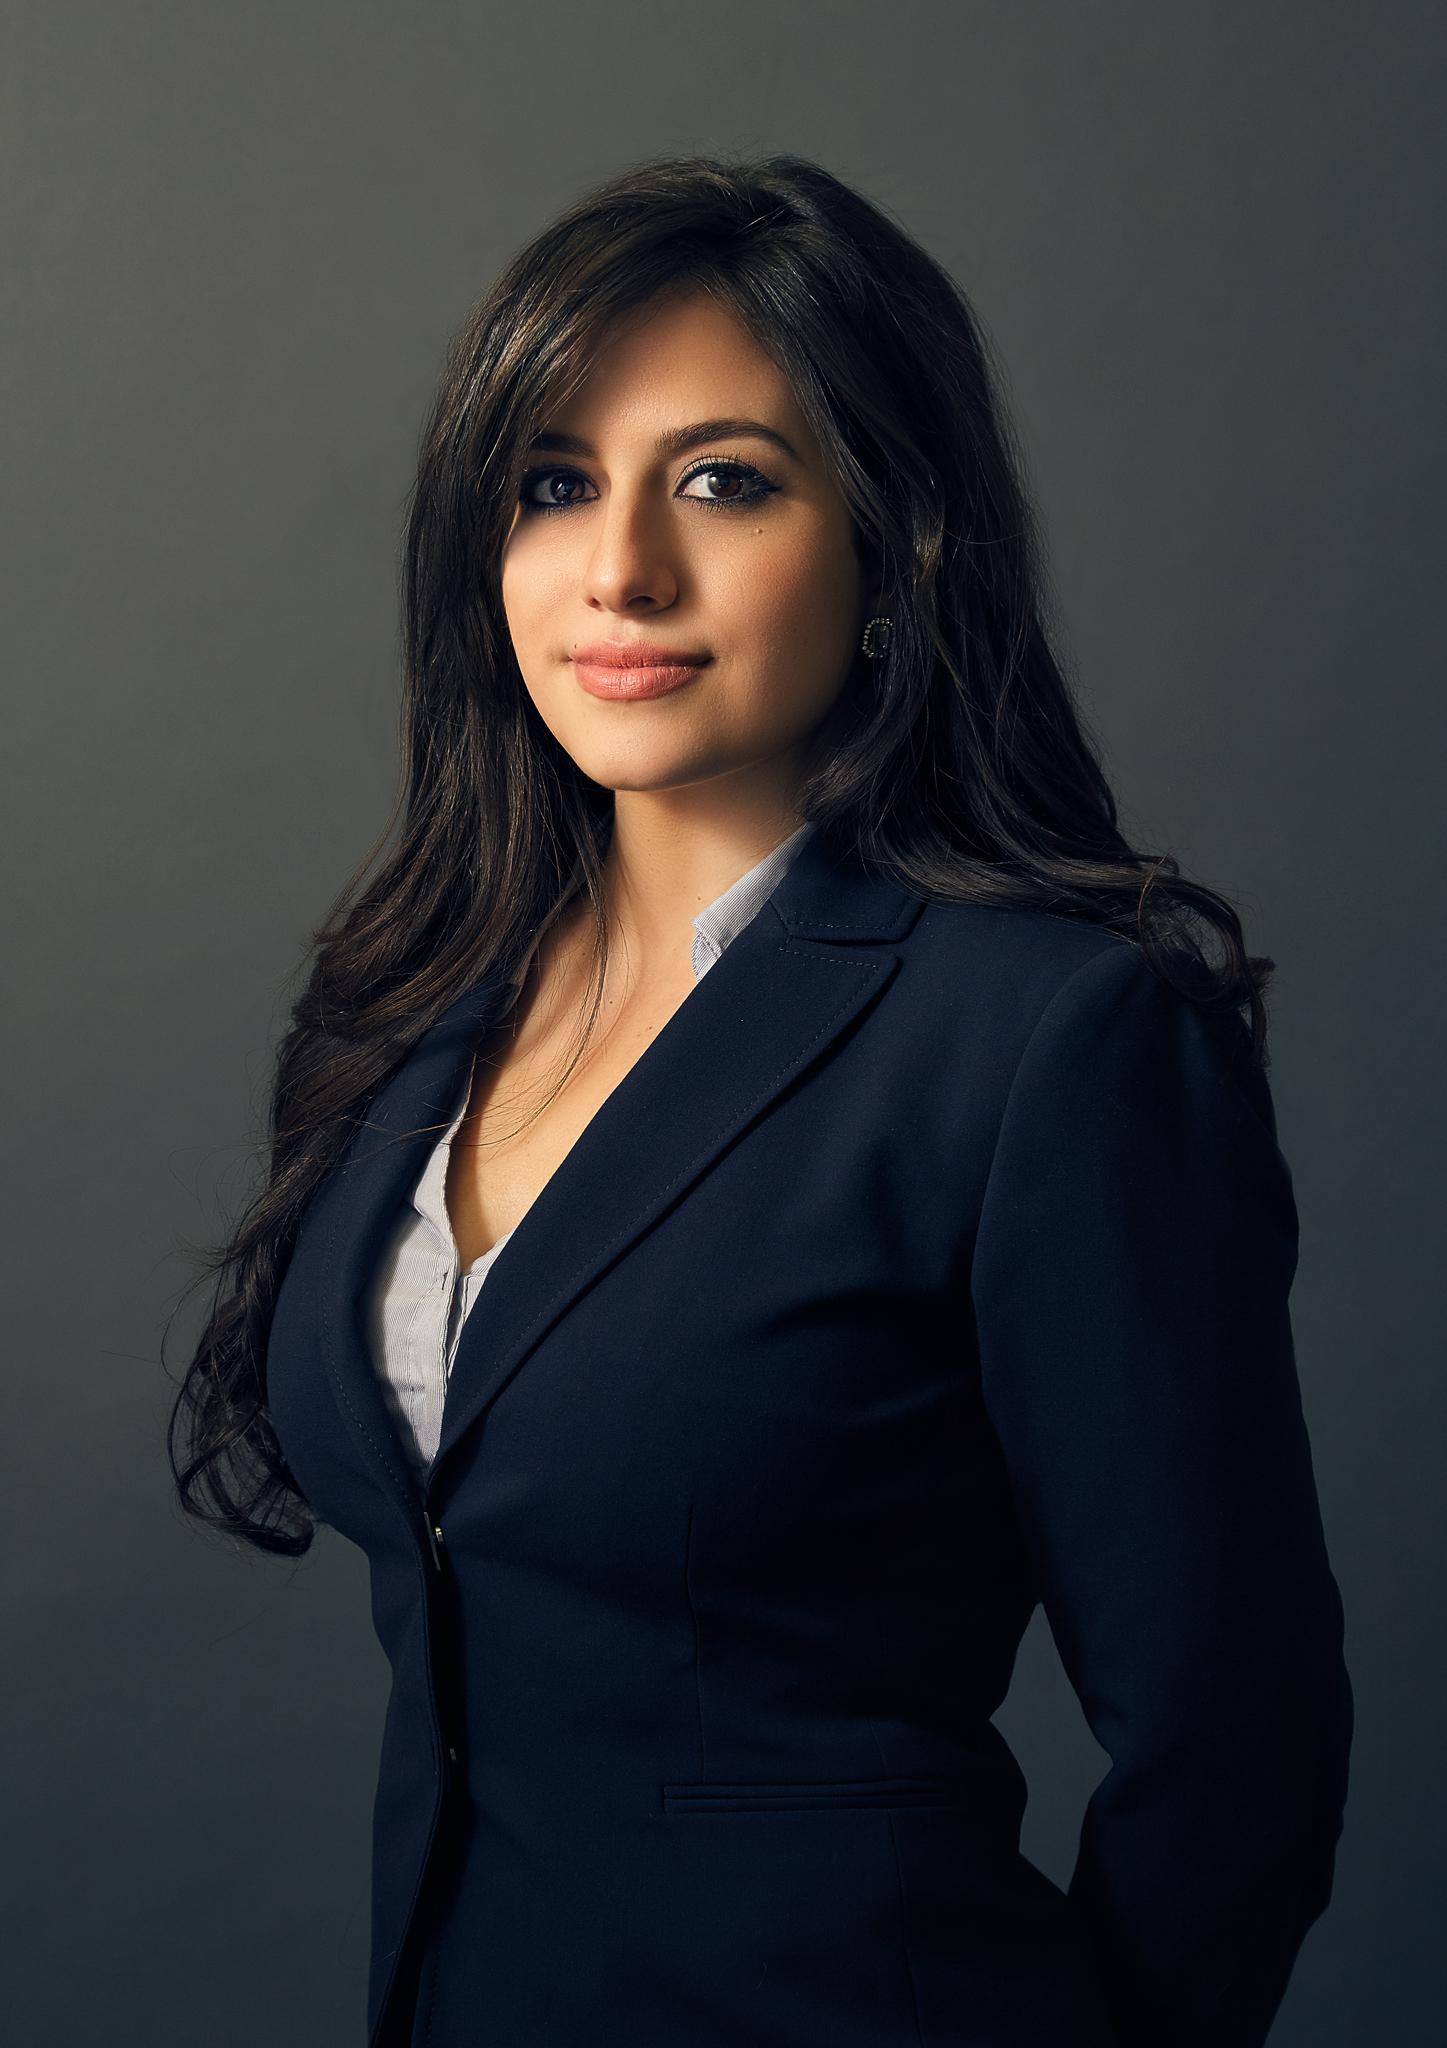 Phoenix Lawyer Headshot Photographer